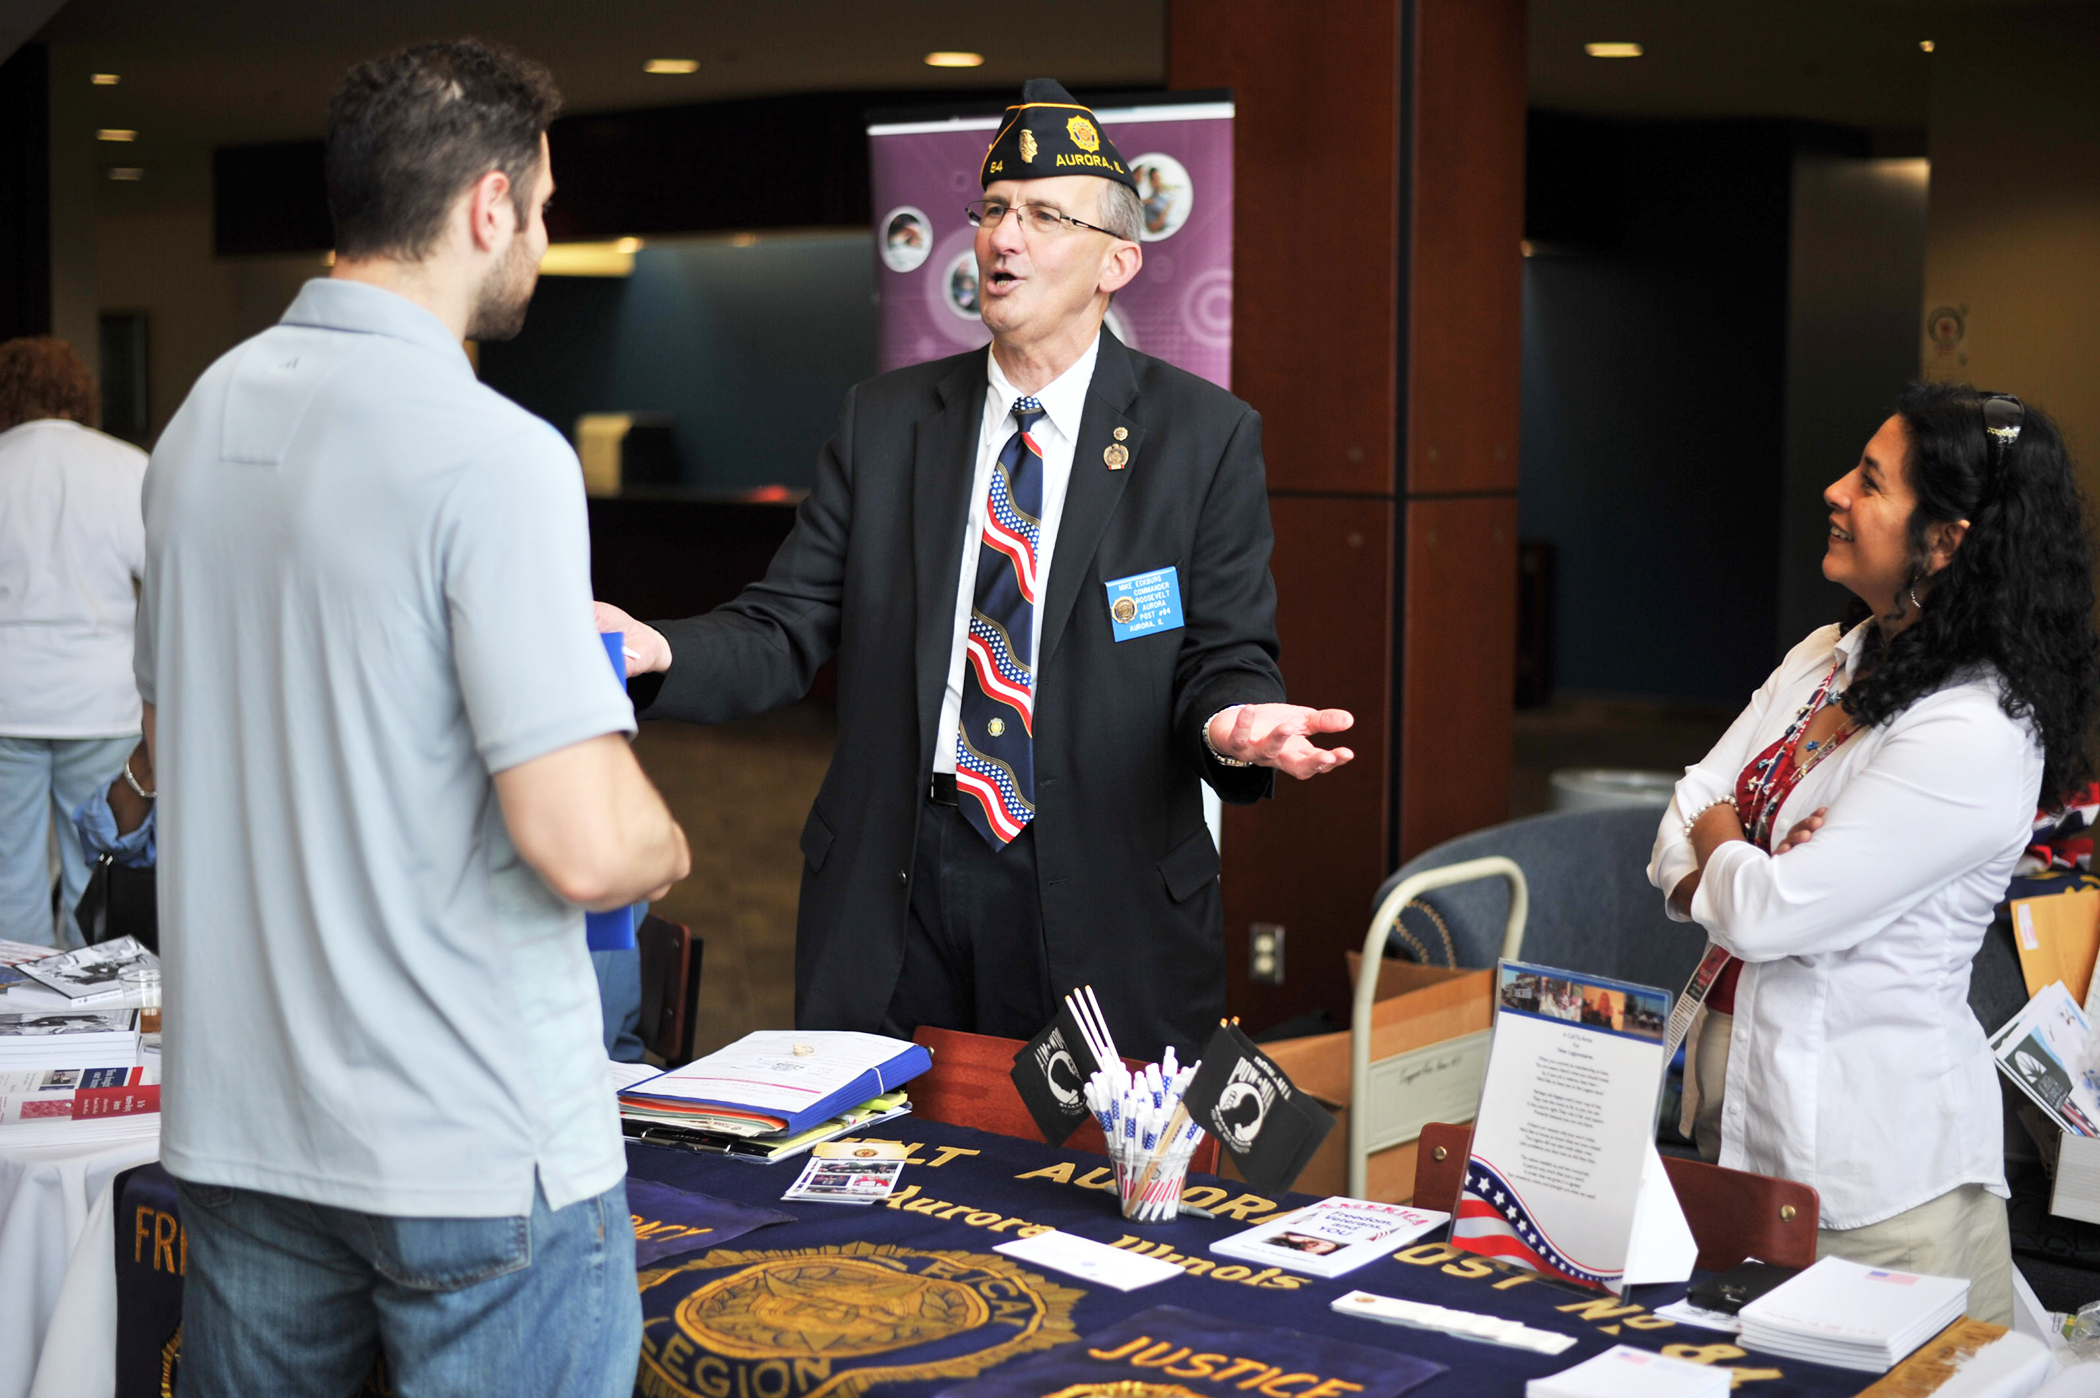 Aurora University veteran's fair